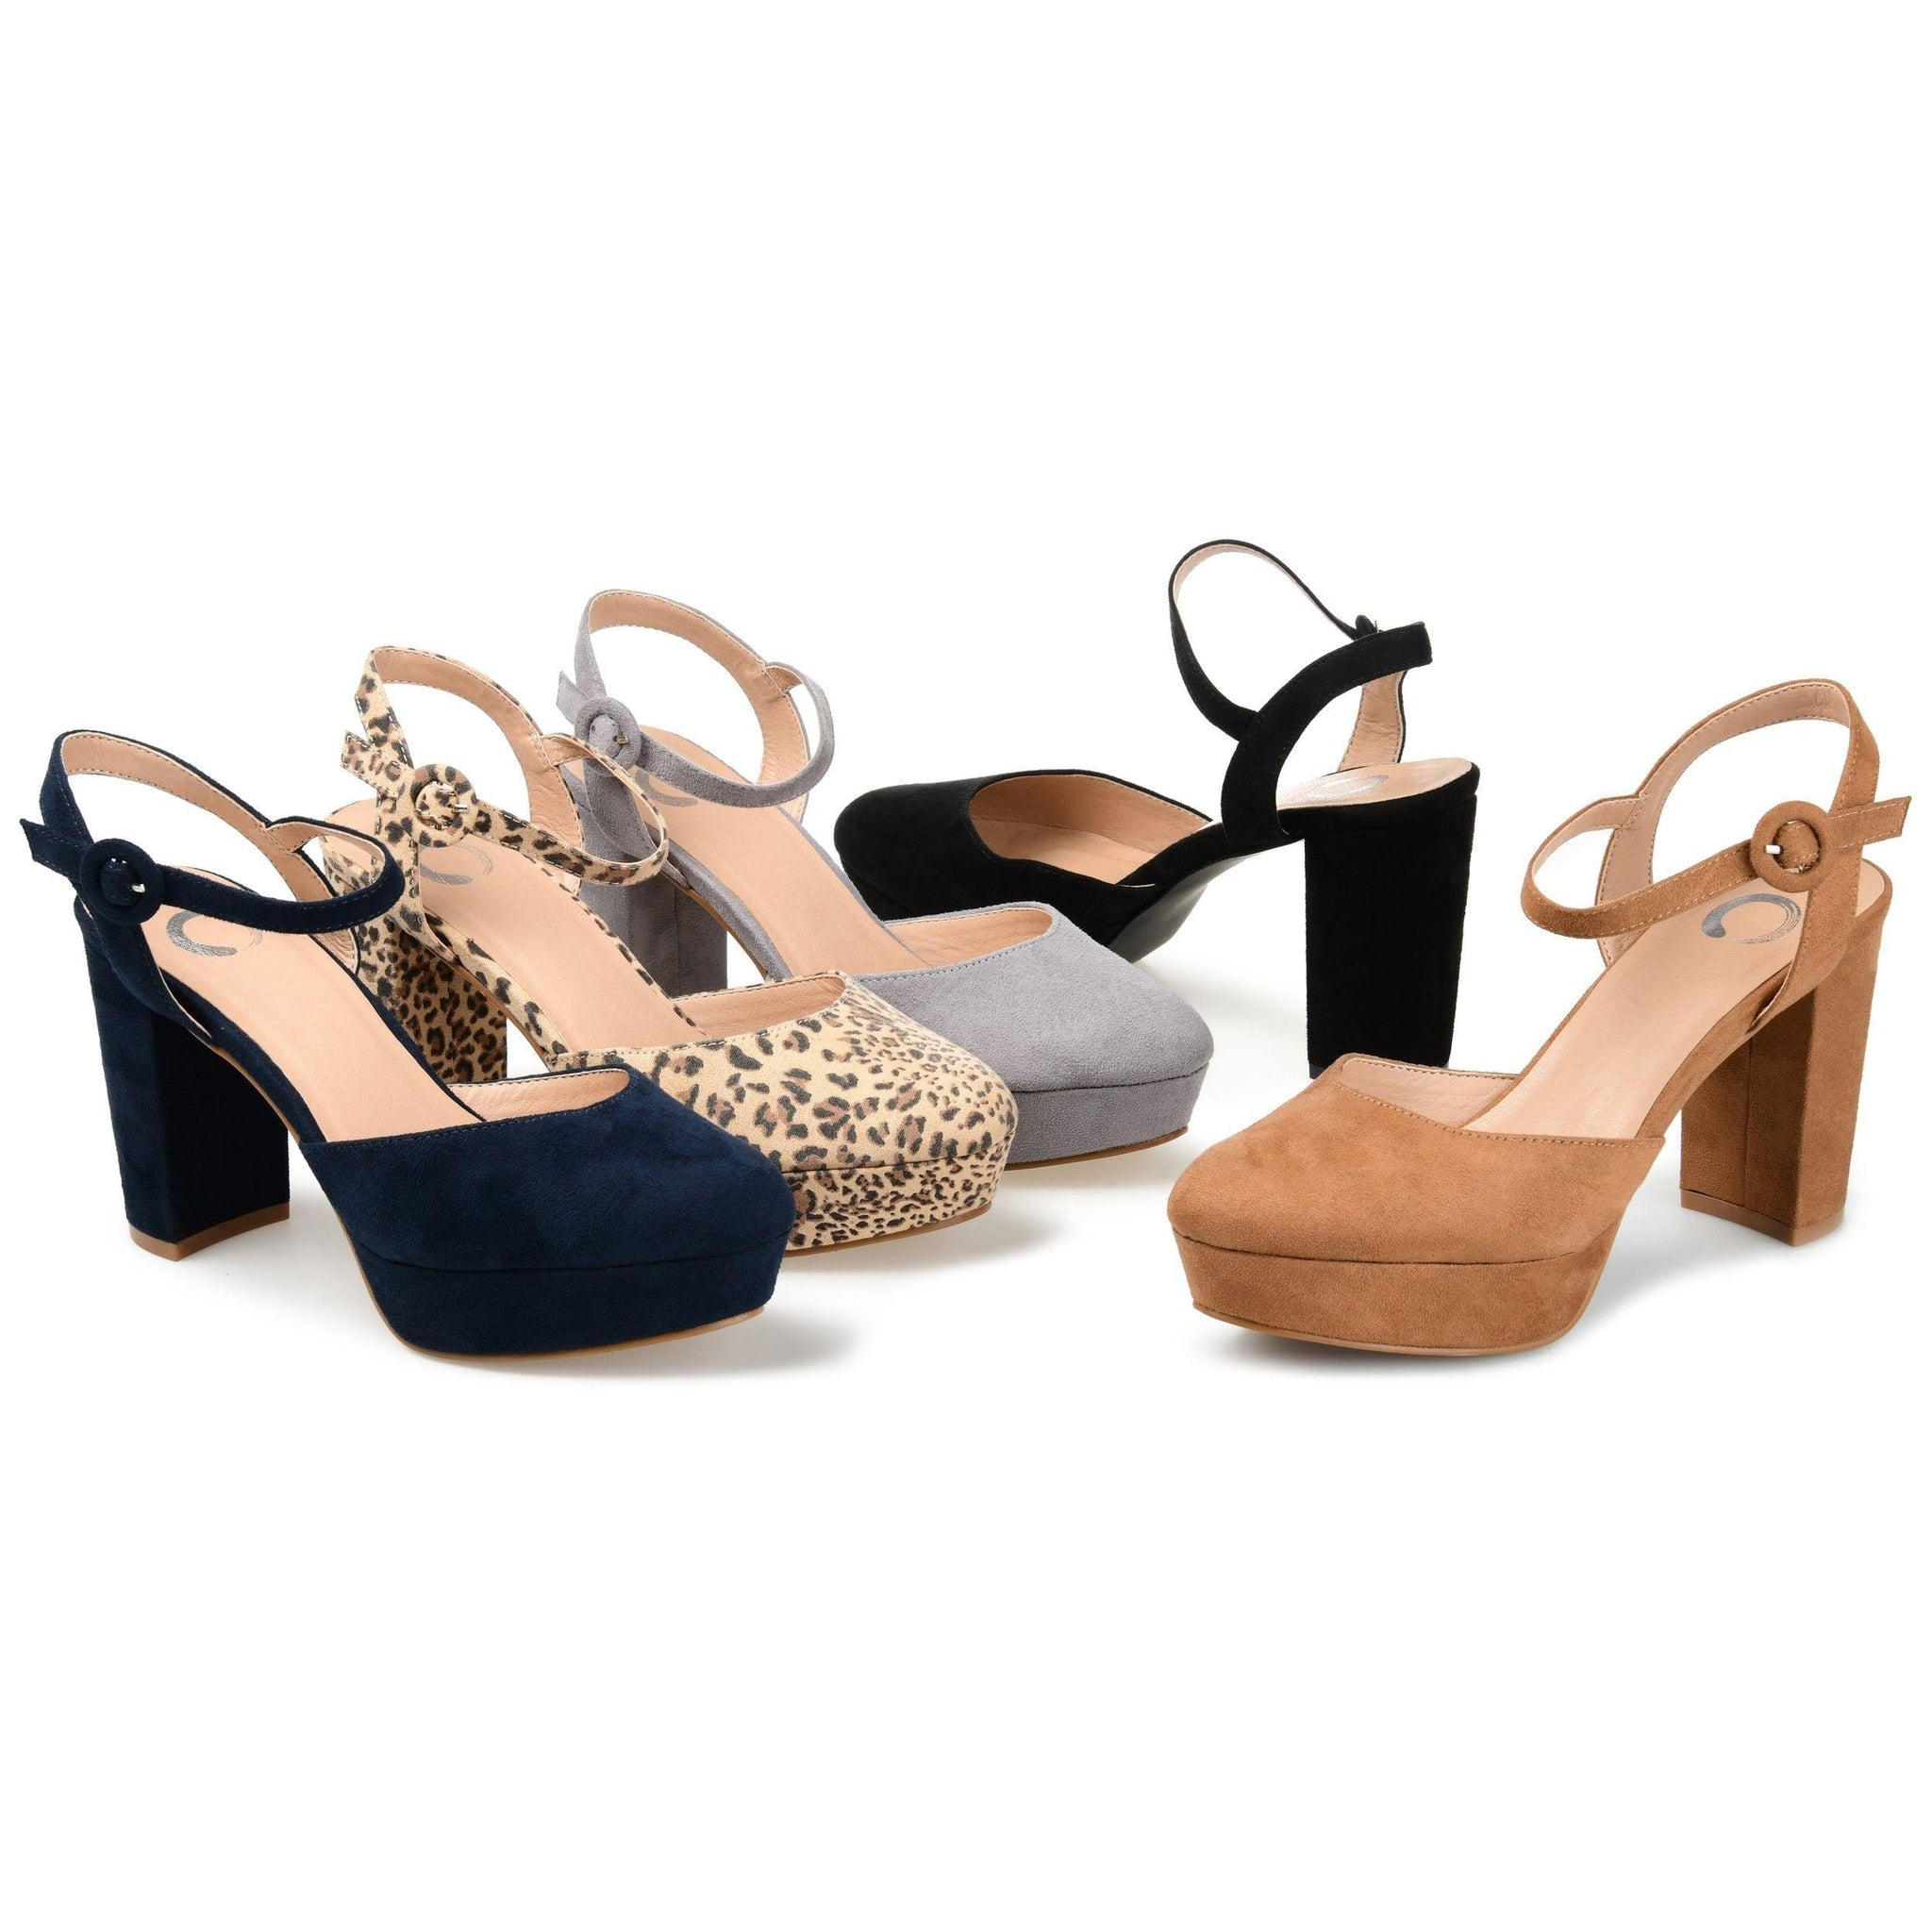 ROSLYNN SHOES Journee Collection